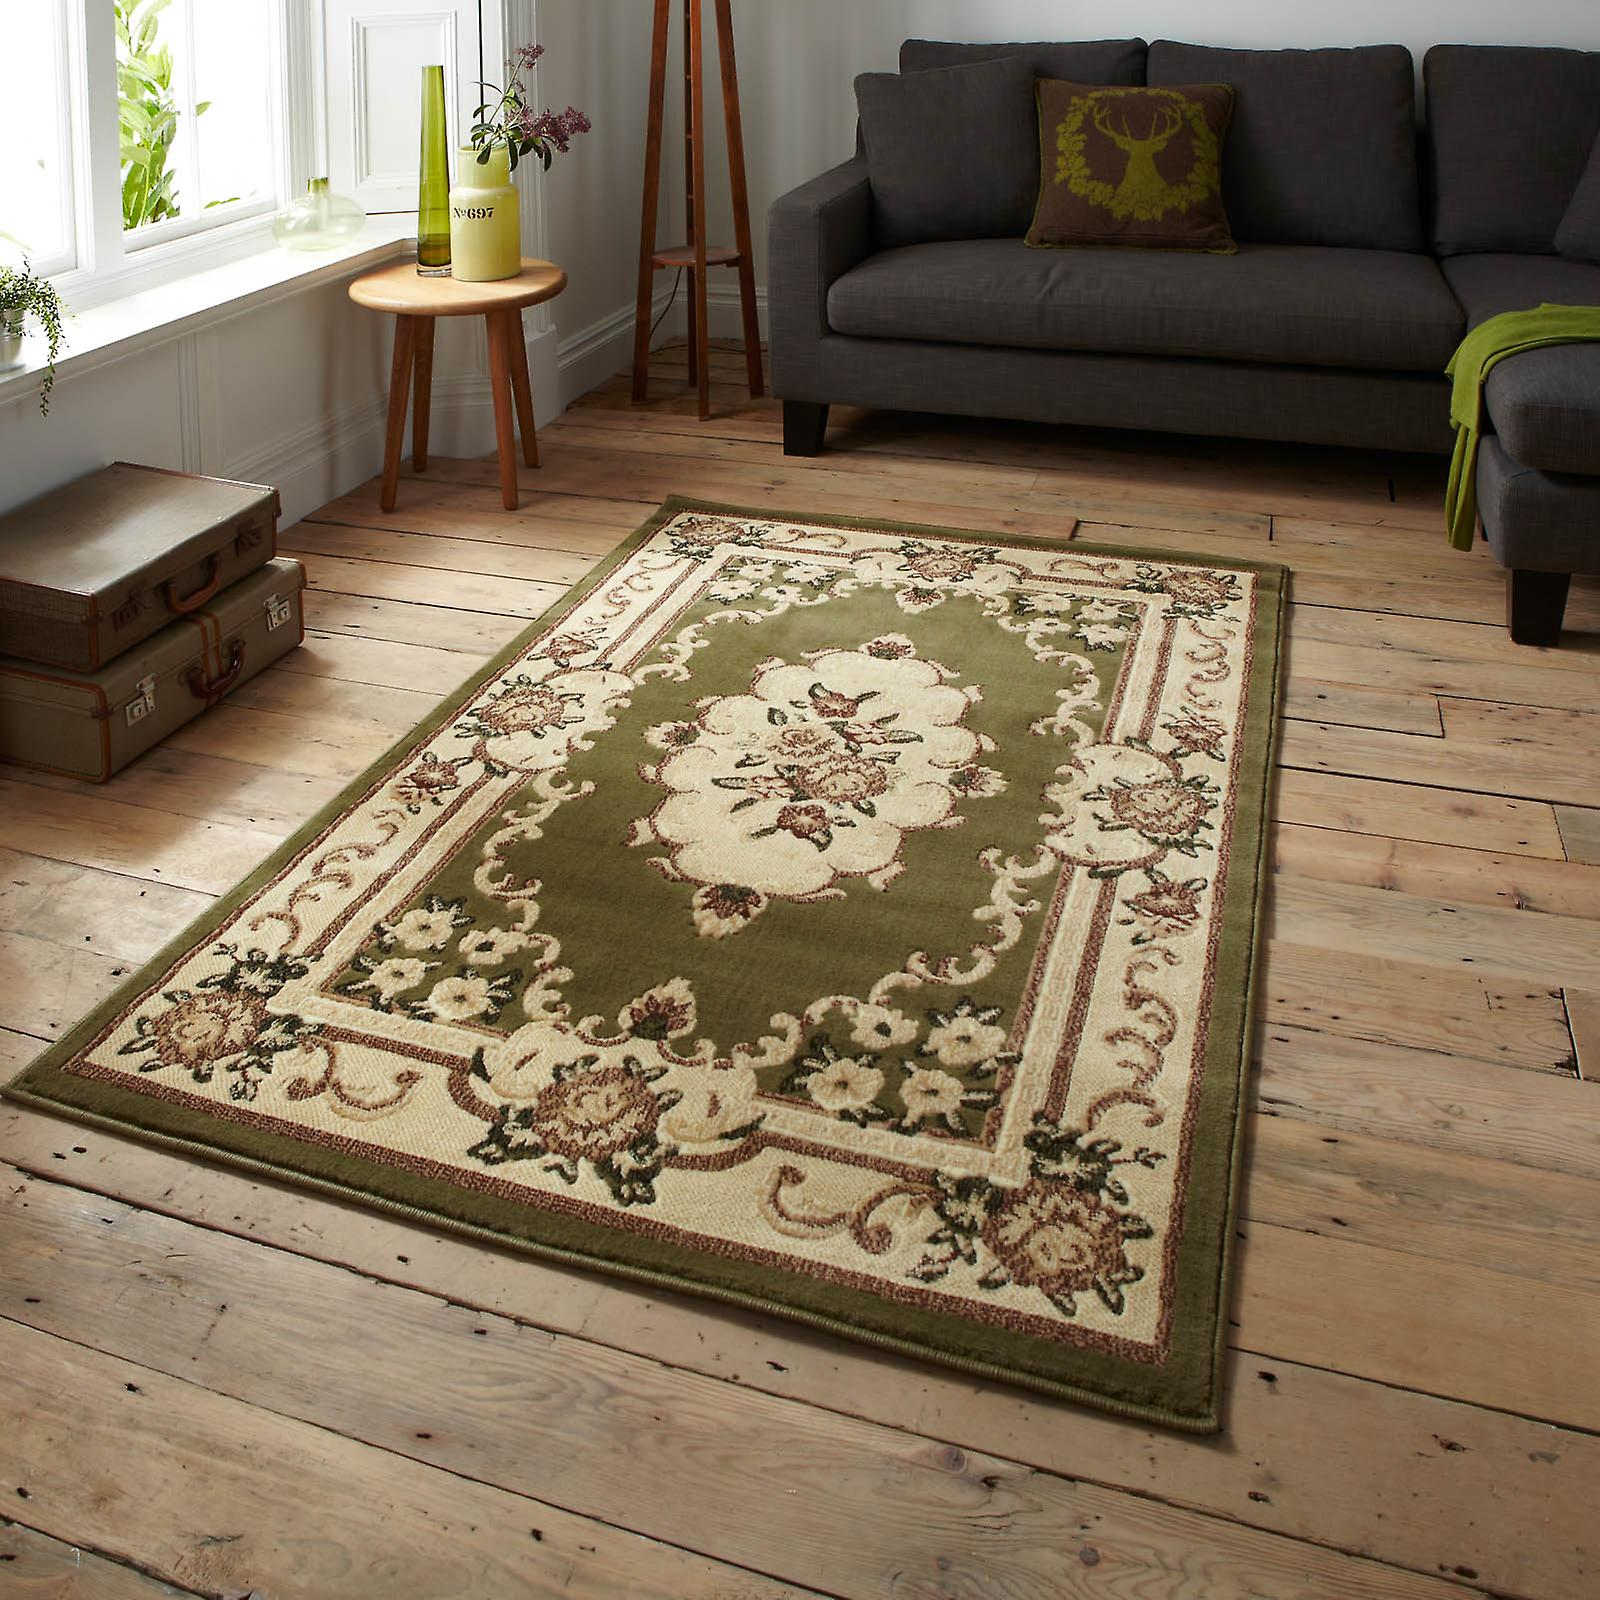 Marrakesh Rugs In Light Green